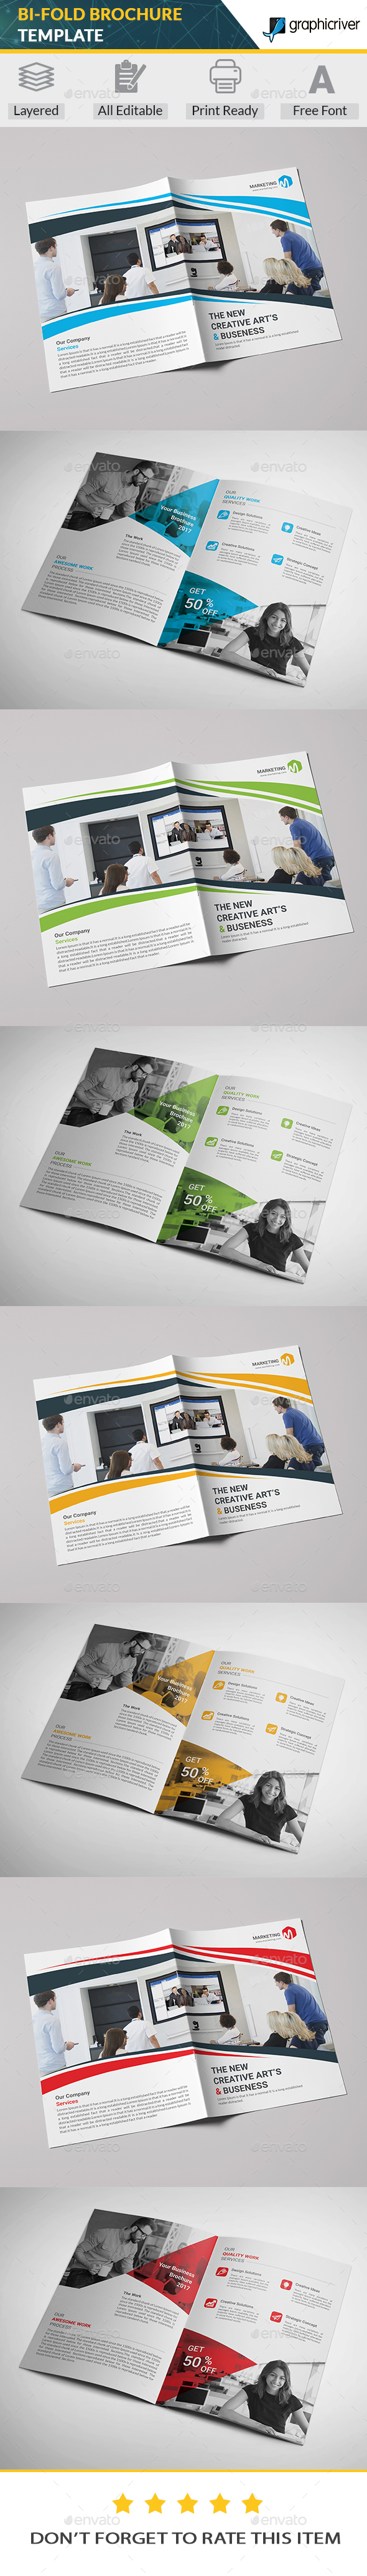 GraphicRiver Bi-Fold Brochure Template 20360979